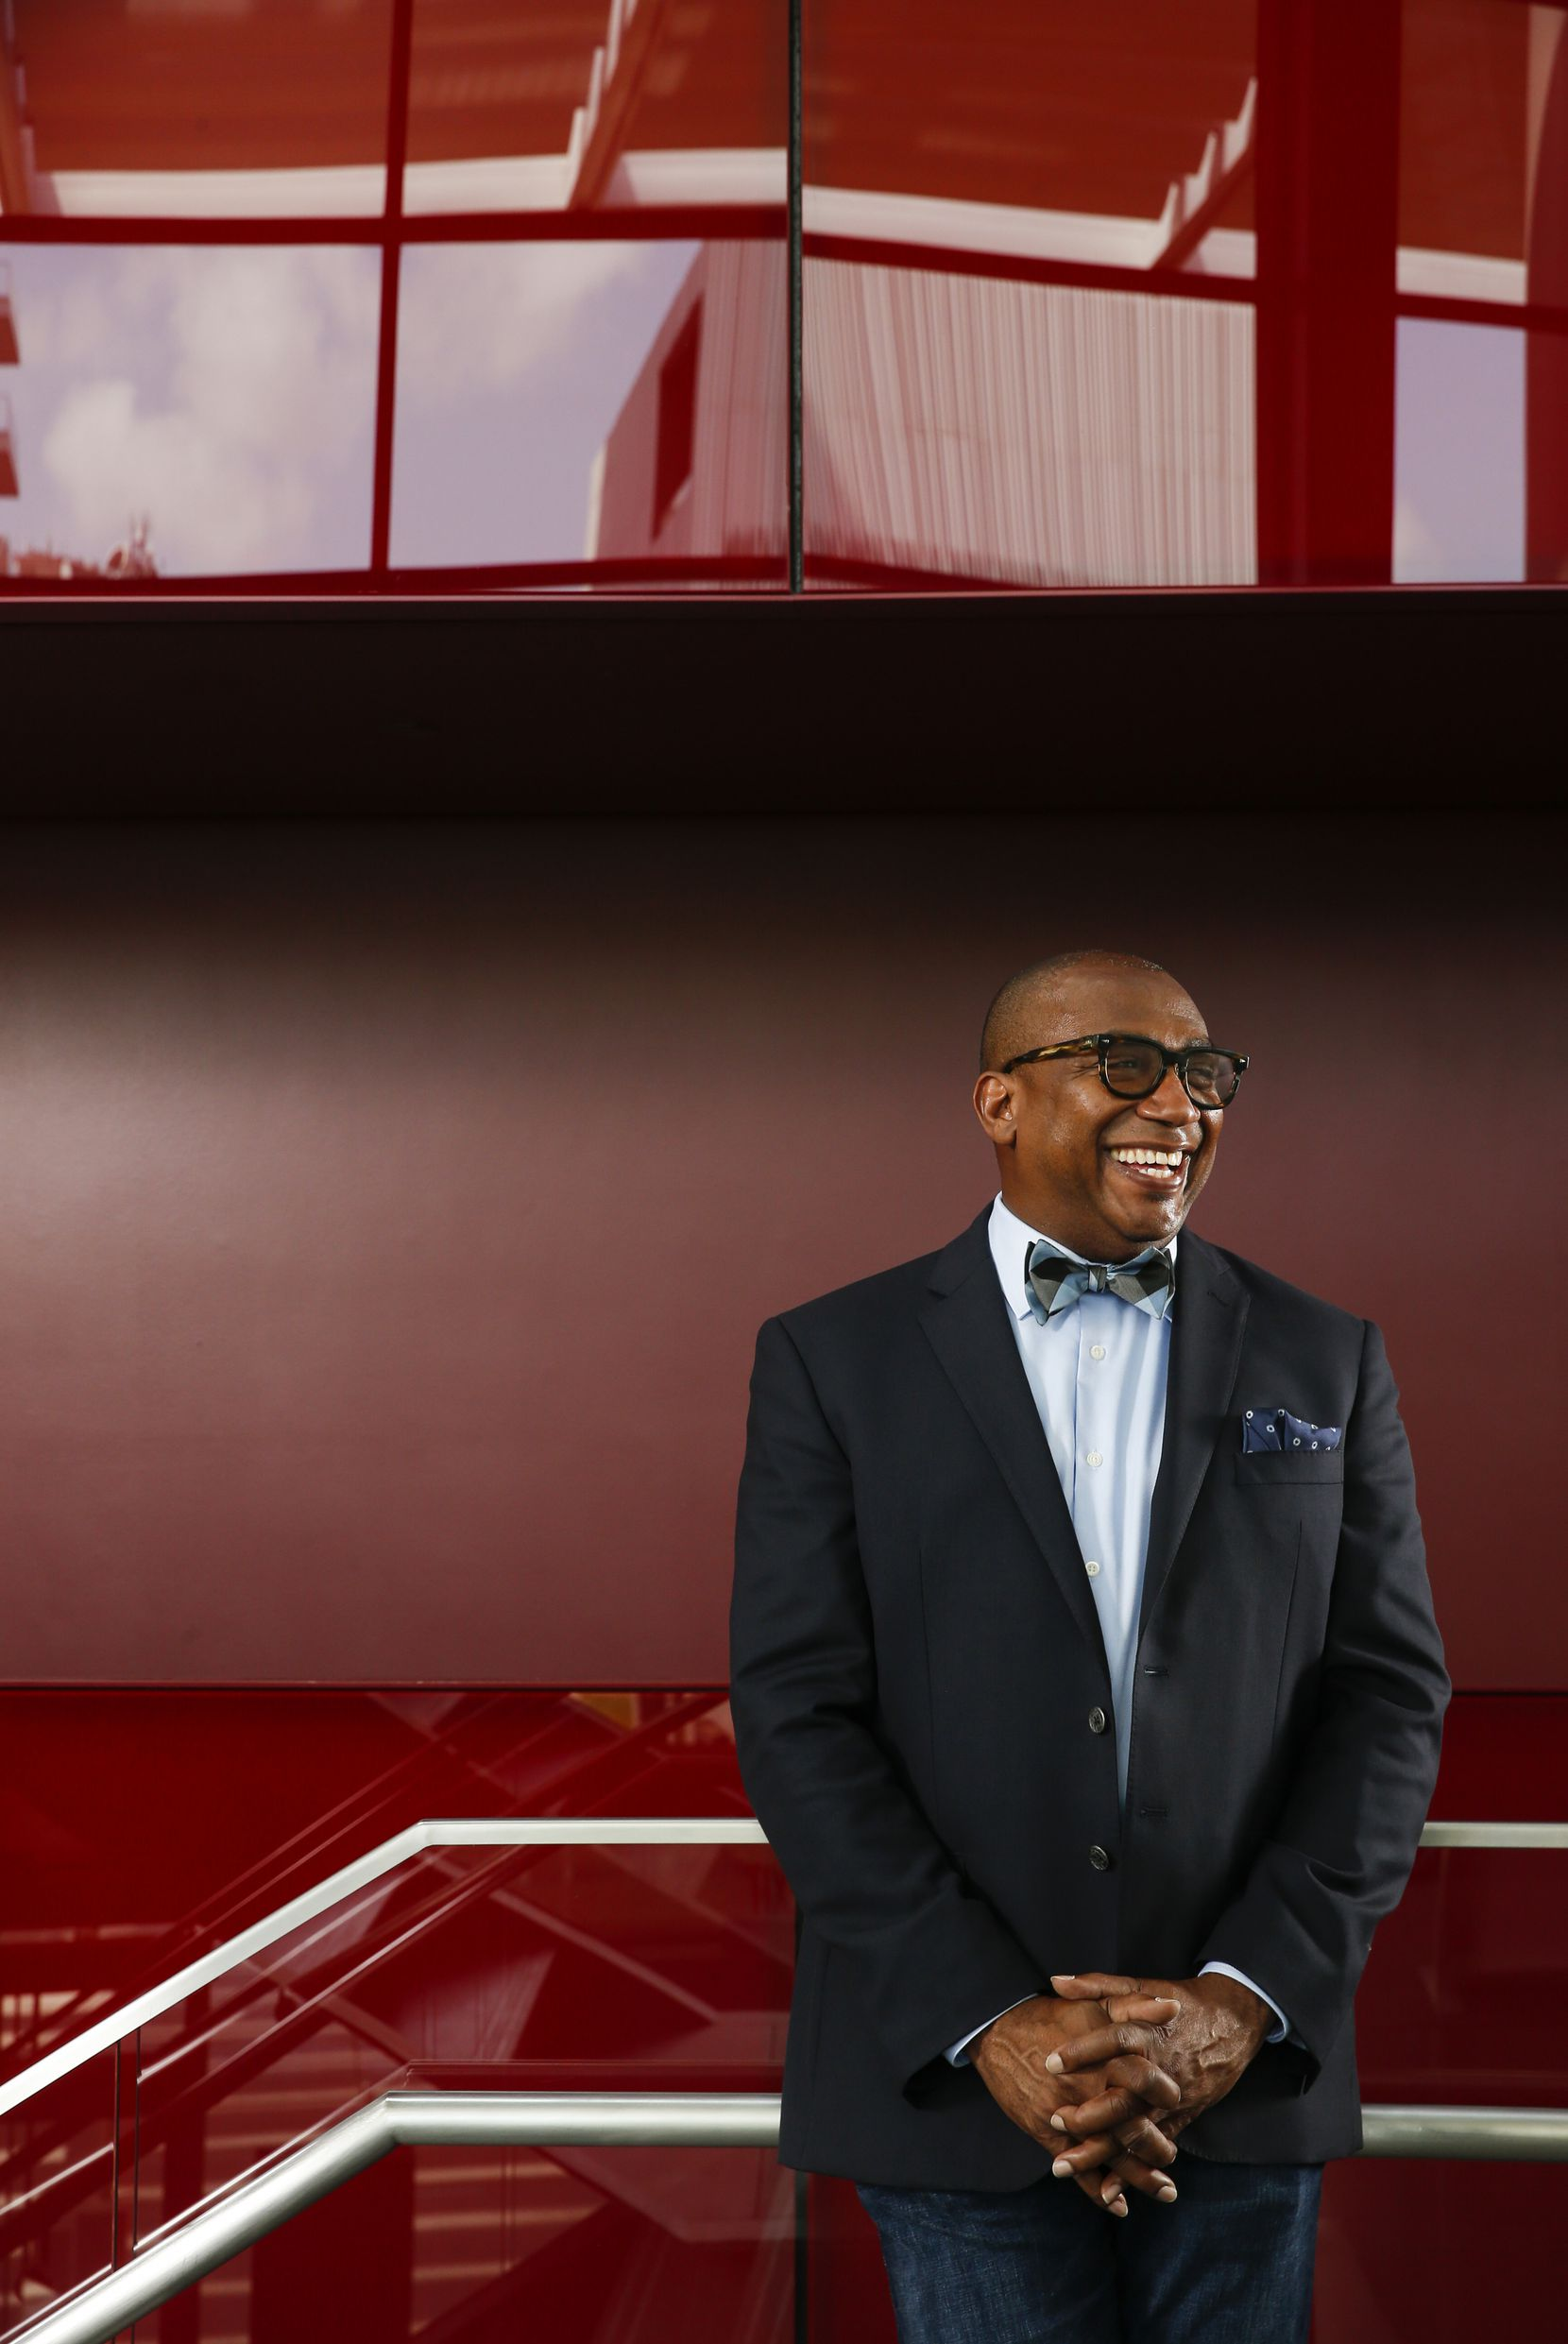 Terry D. Loftis, president of The Arts Community Alliance, poses for a photograph Wednesday, July 8, 2020 at Winspear Opera House in Dallas.